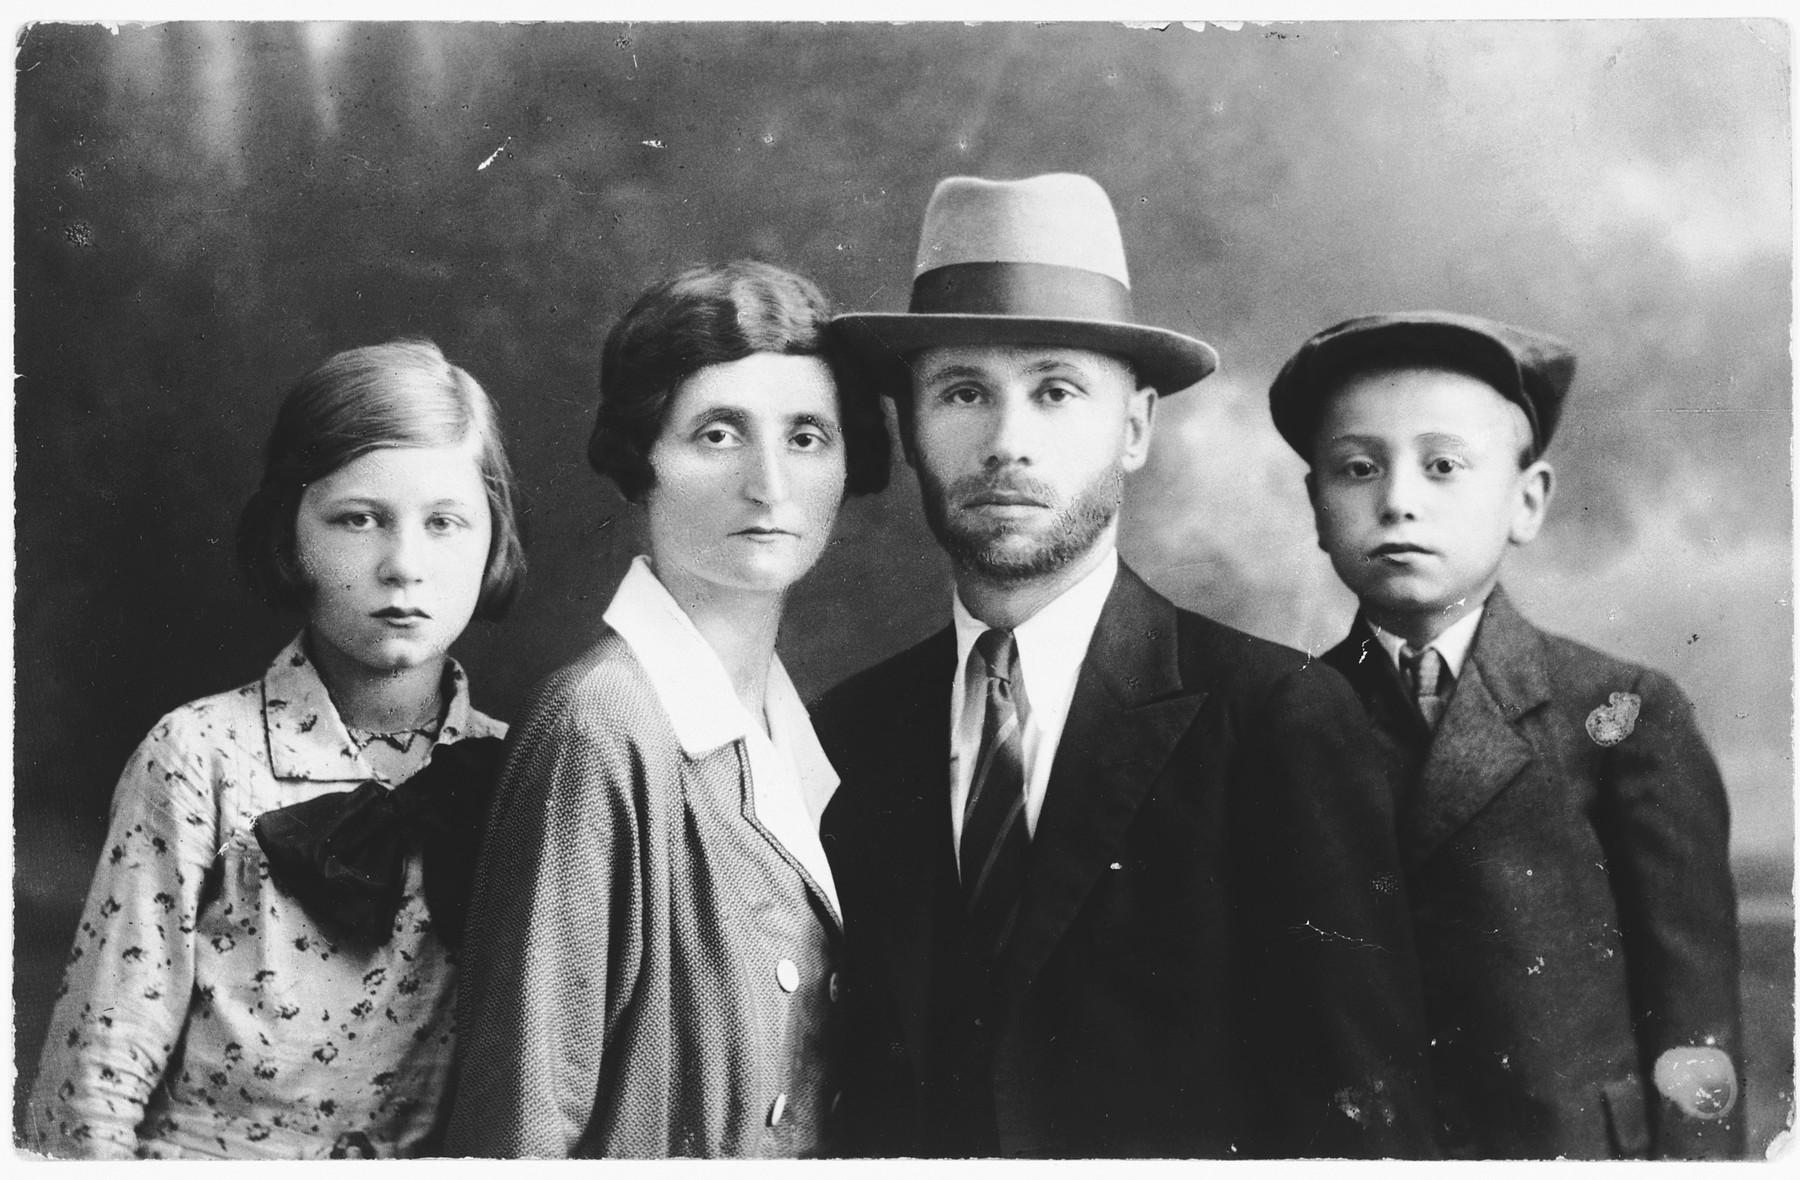 Portrait of the Fried family in Satu Mare, Romania.  Pictured are Samuel and Rose Fried and their two children, Gizella and Joseph.